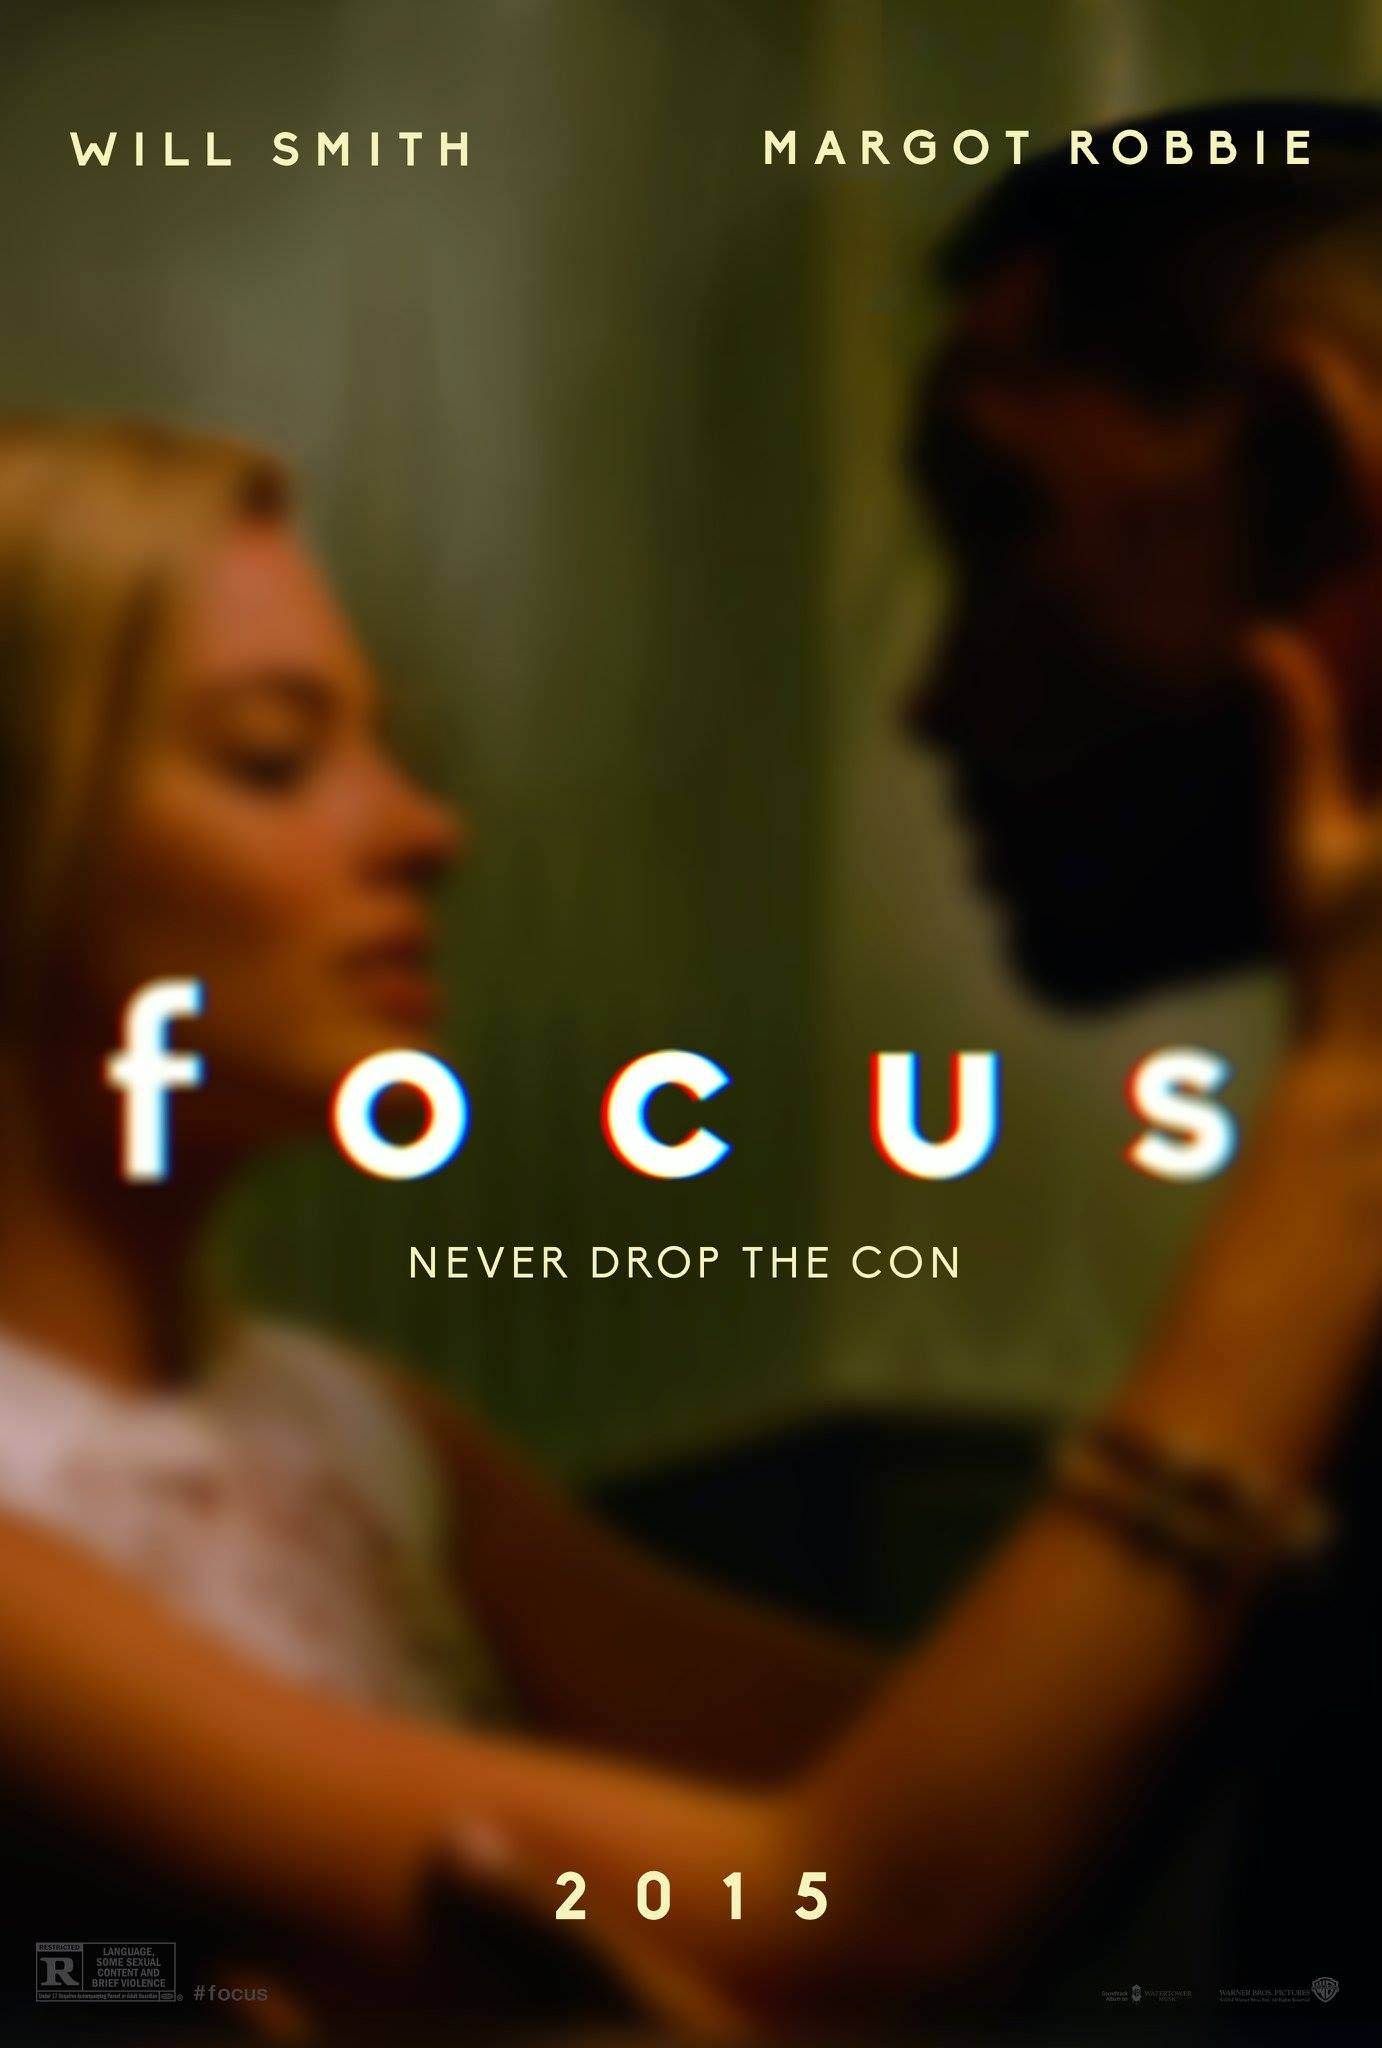 Never Drop The Con Watch The Exclusive New Trailer For Focus Starring Will Smith And Margot Robbie On Itunes Trail Will Smith Will Smith Movies Margot Robbie